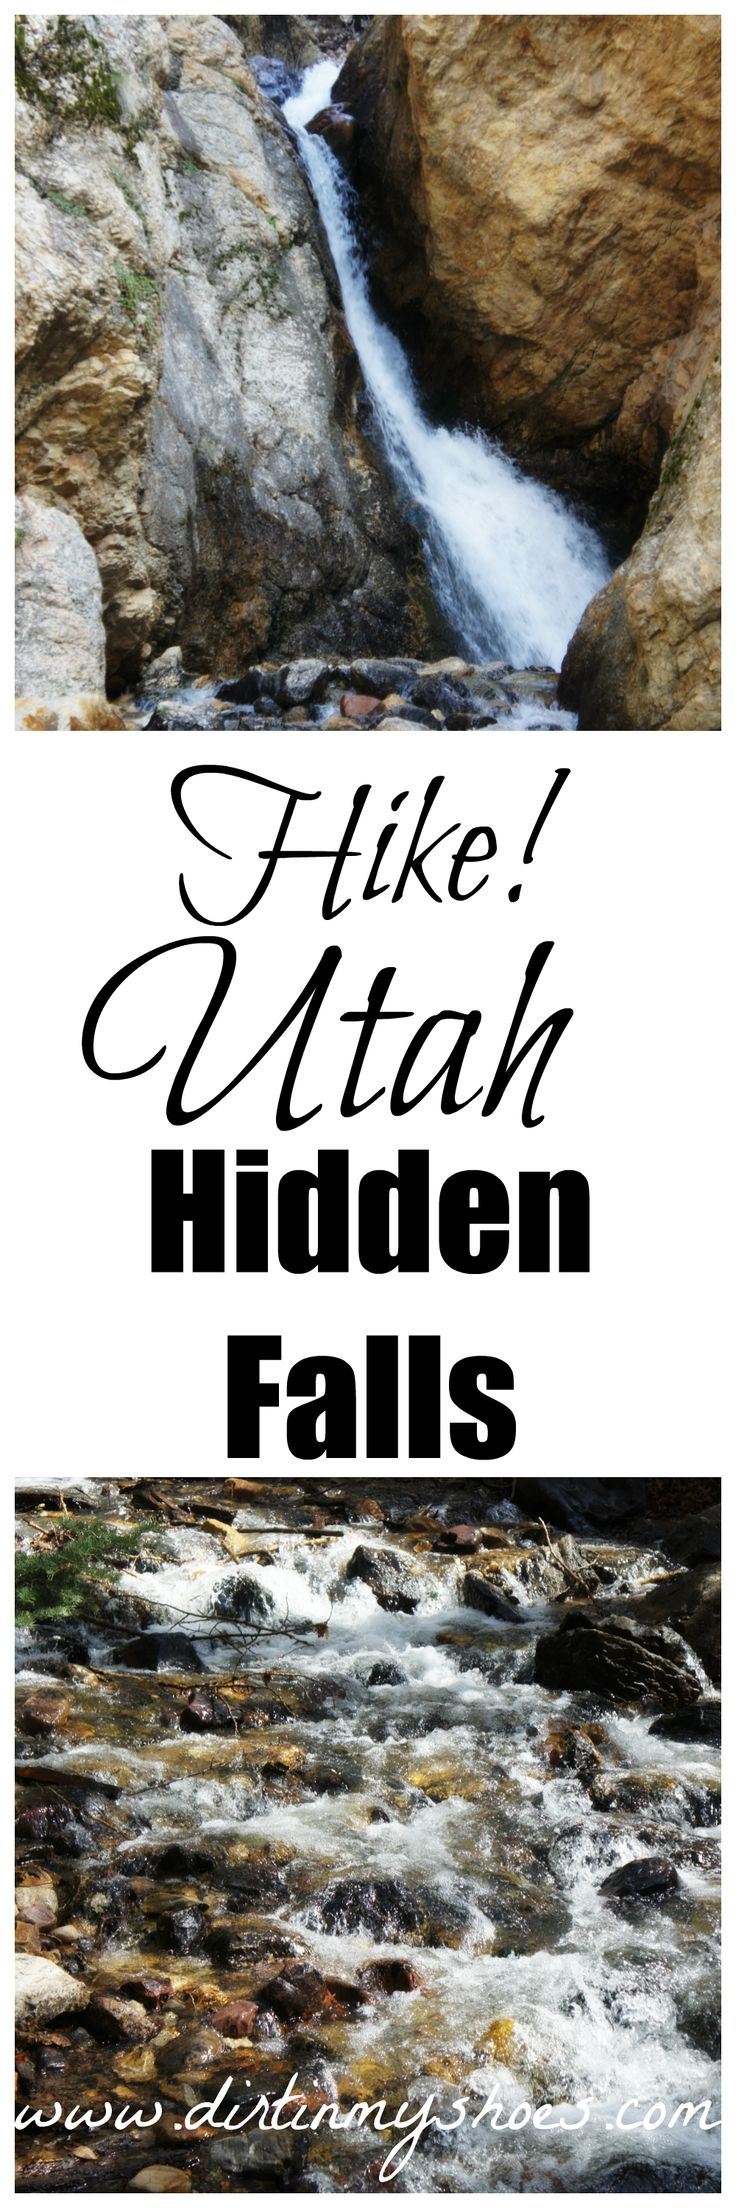 Three Waterfalls, One Parking Area.  Hike Hidden Falls!  | Dirt In My Shoes